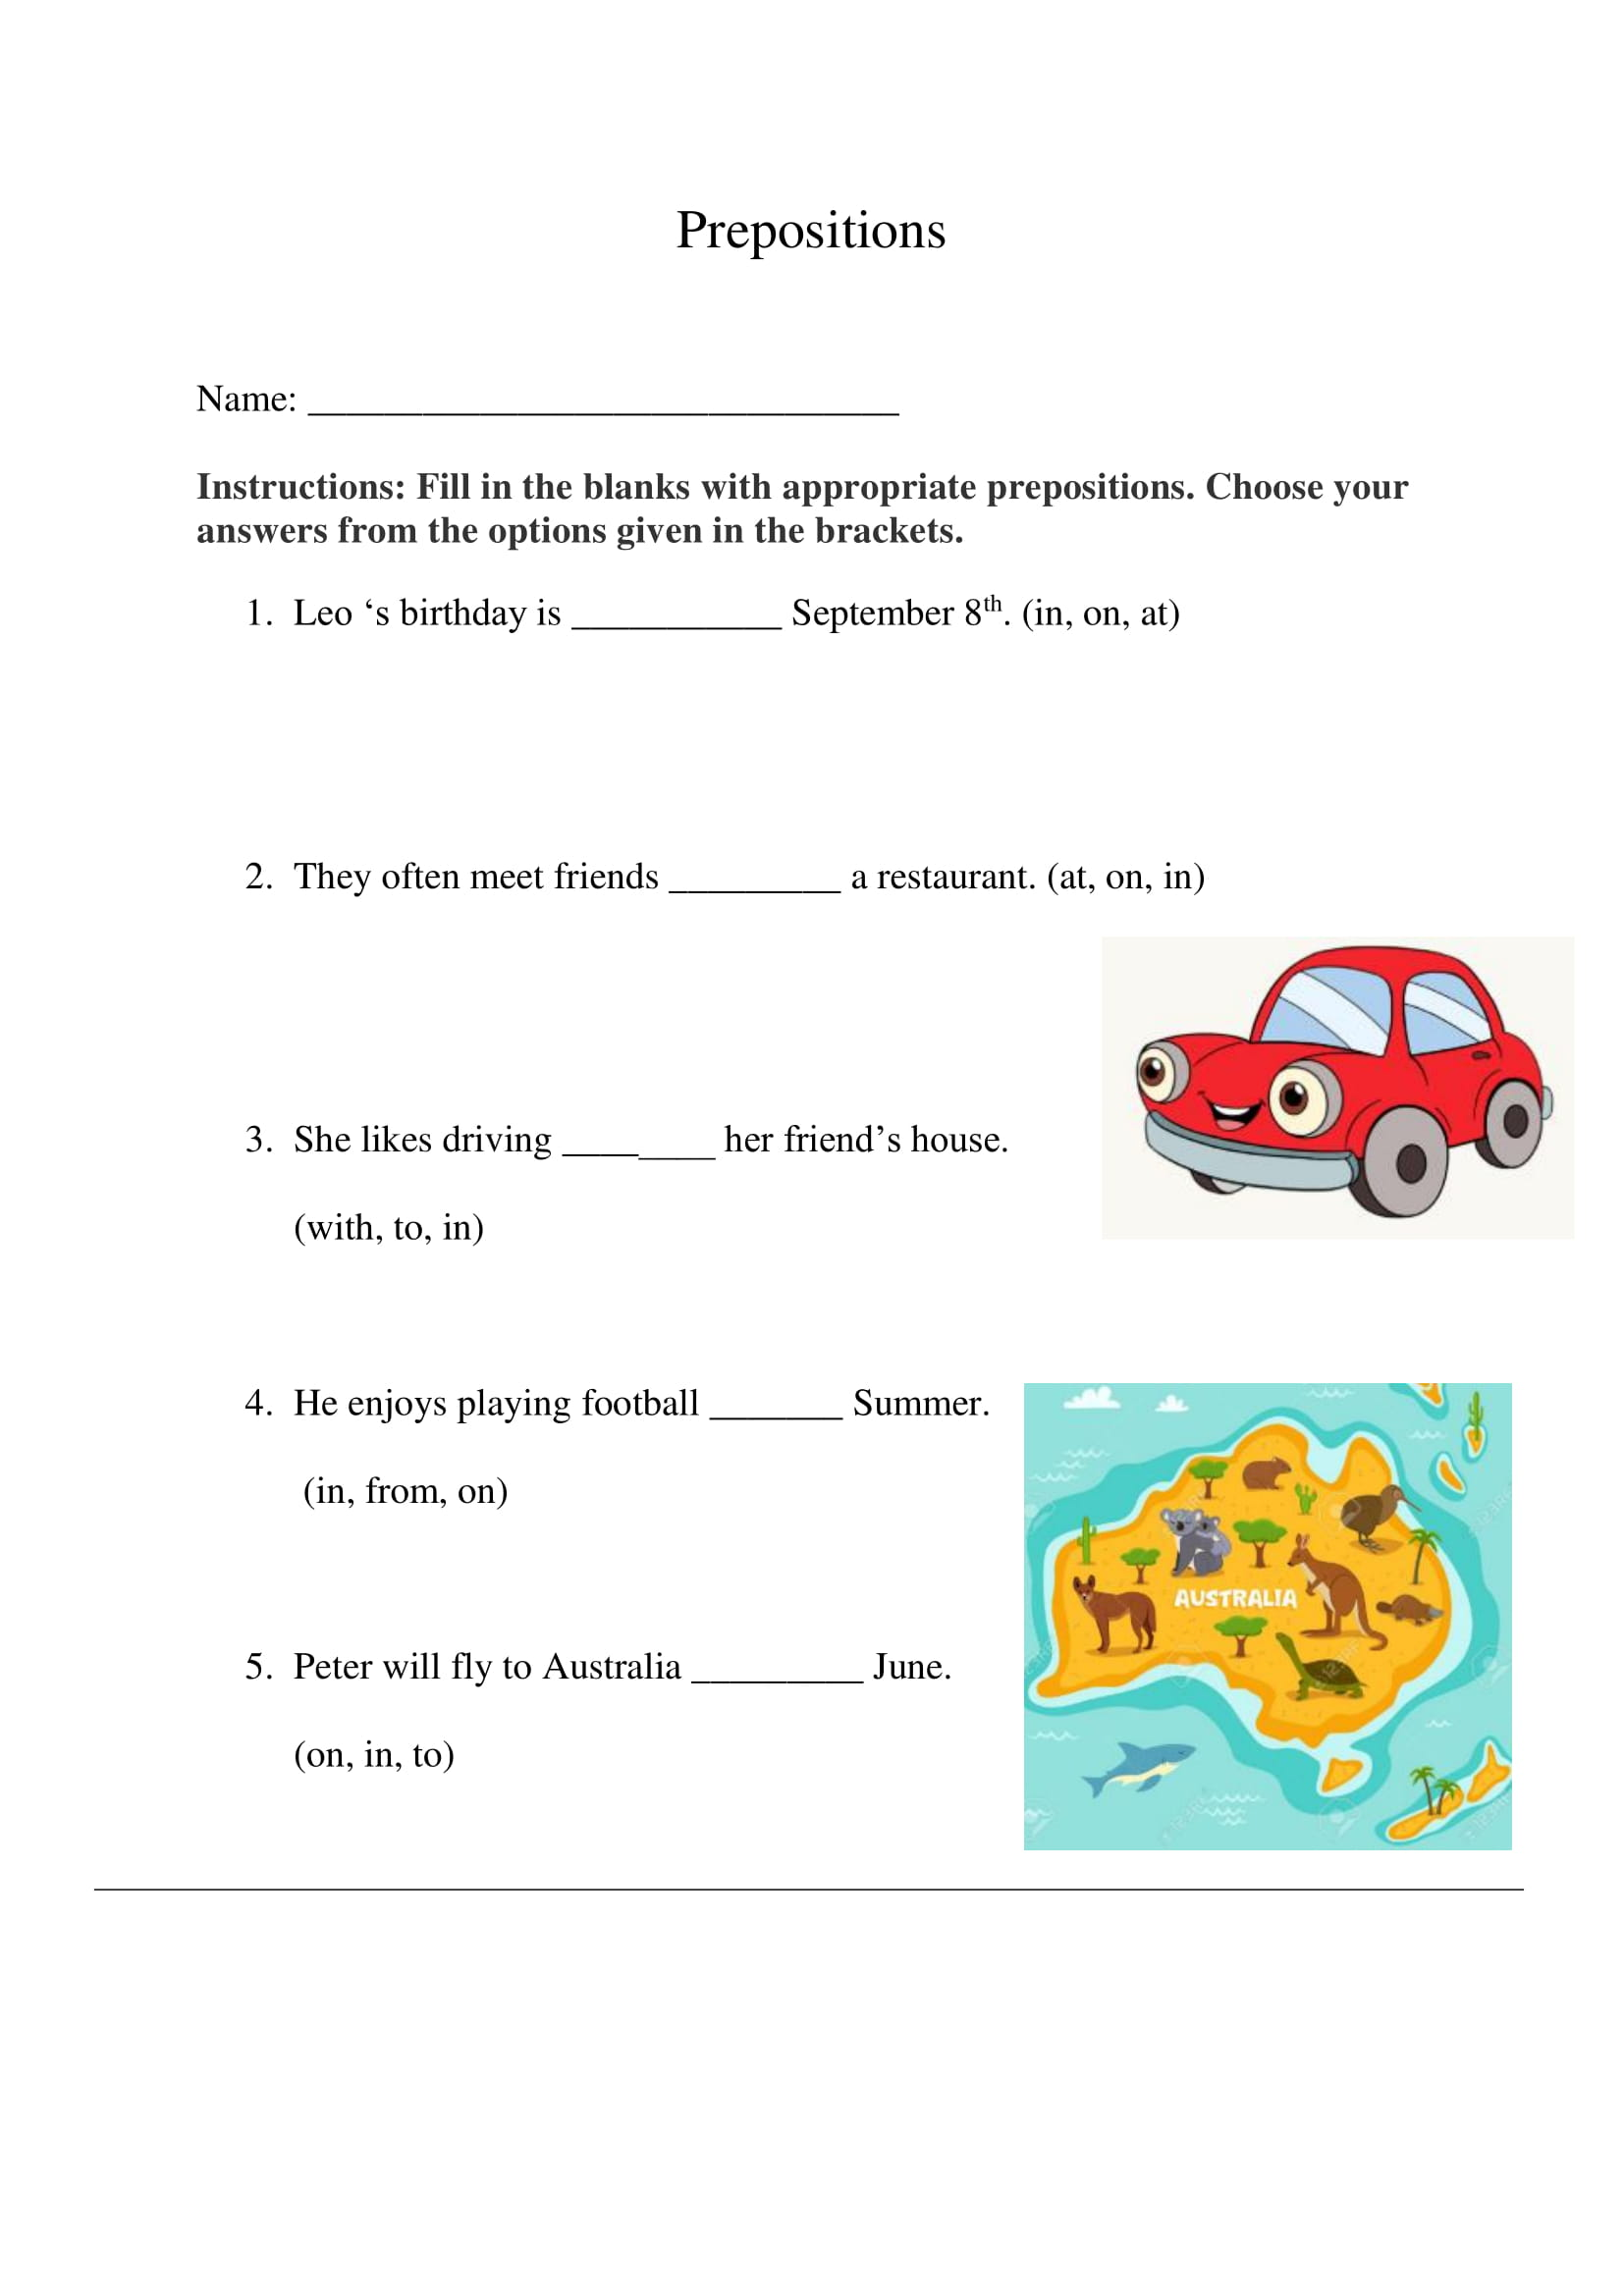 Prepositions Exercise 4